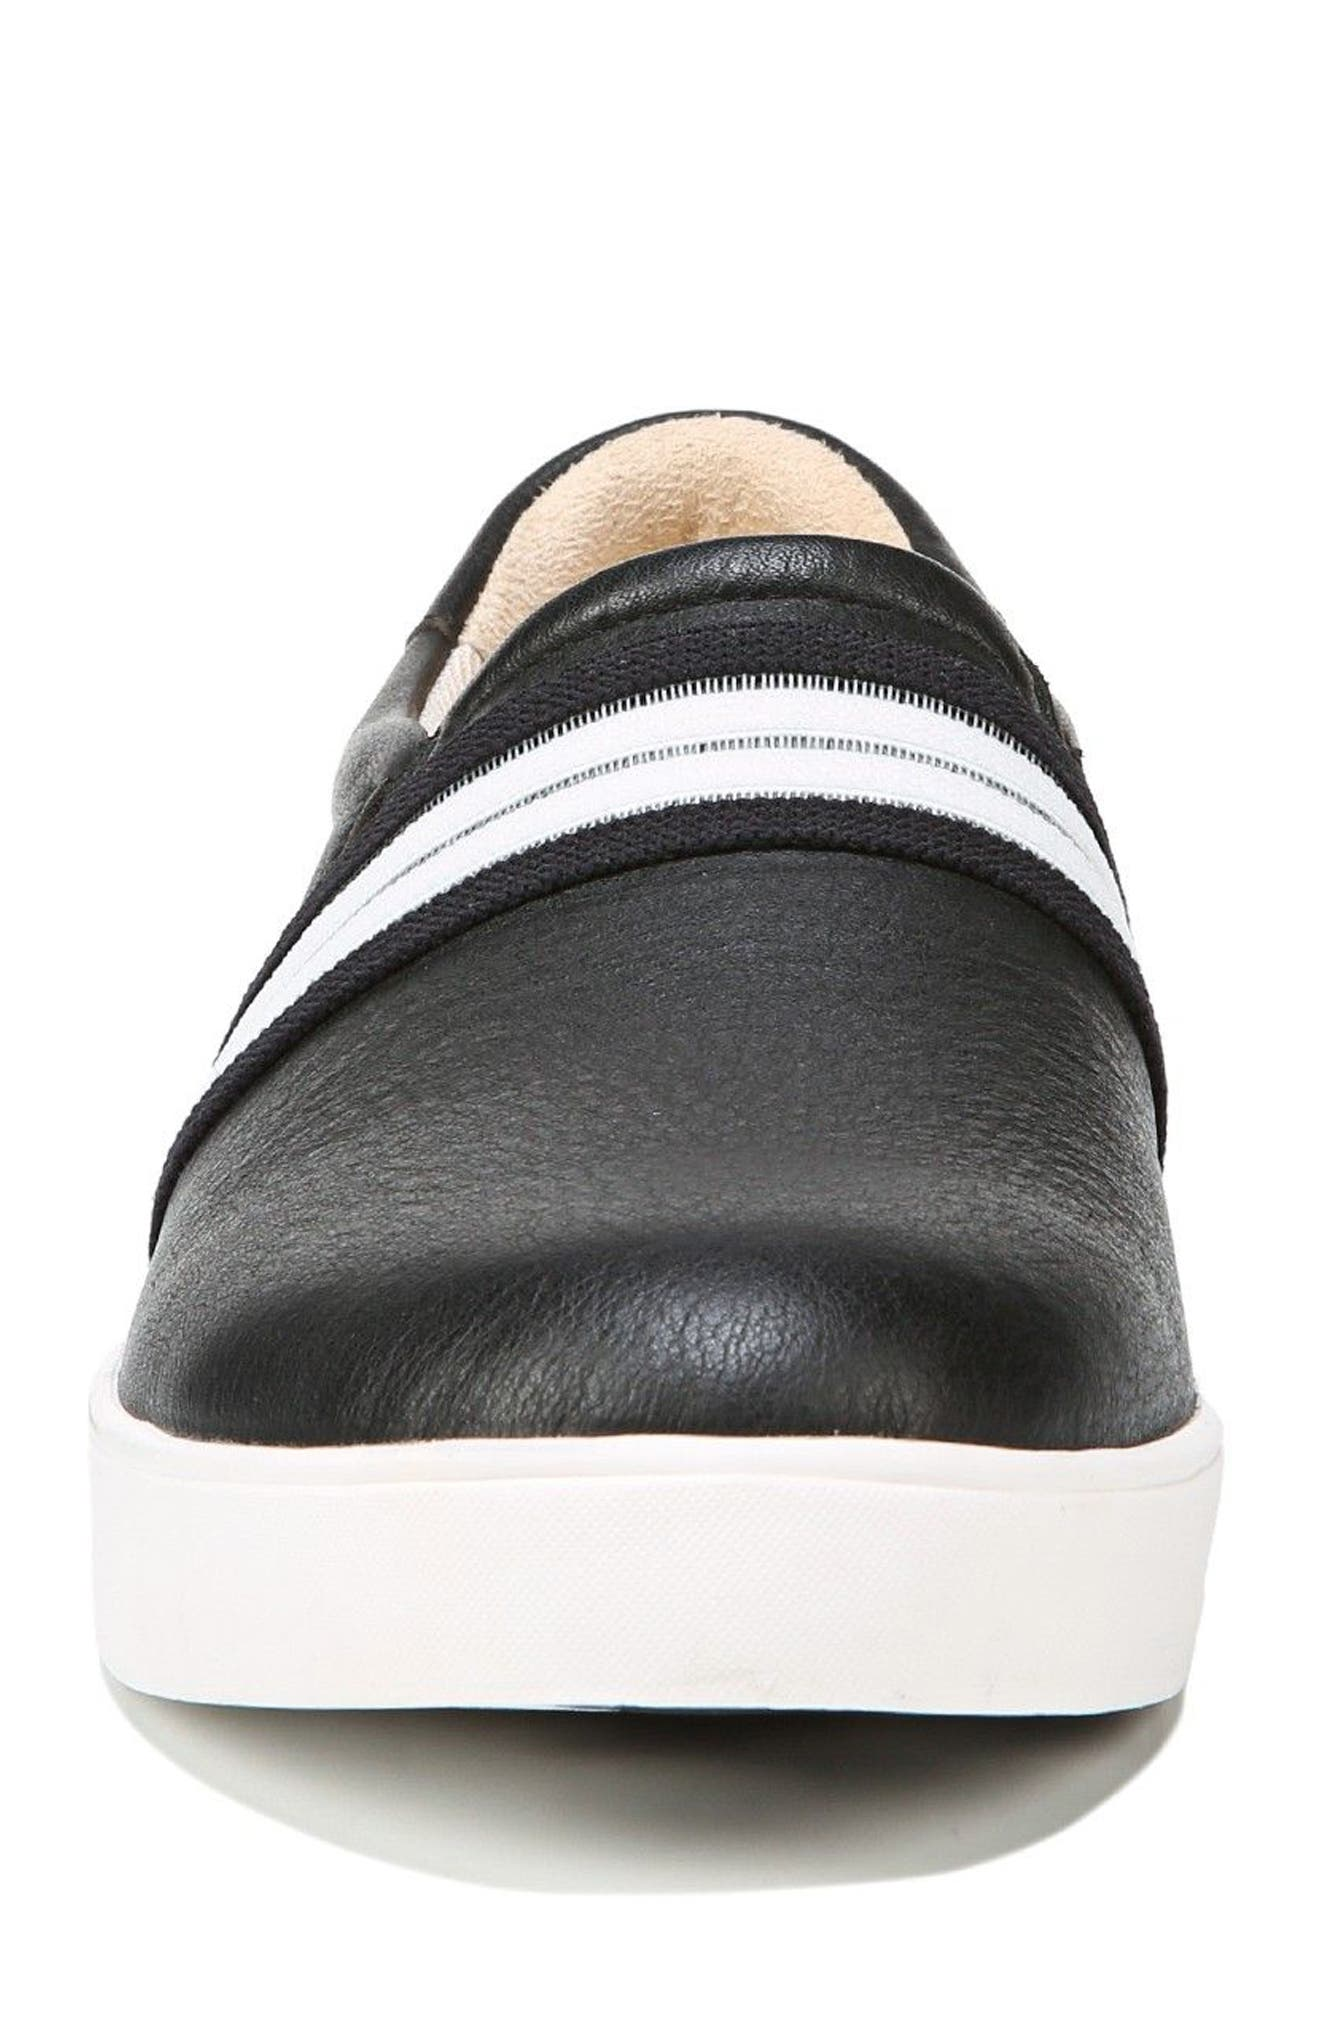 Scout Slip-On Sneaker,                             Alternate thumbnail 4, color,                             BLACK LEATHER 2